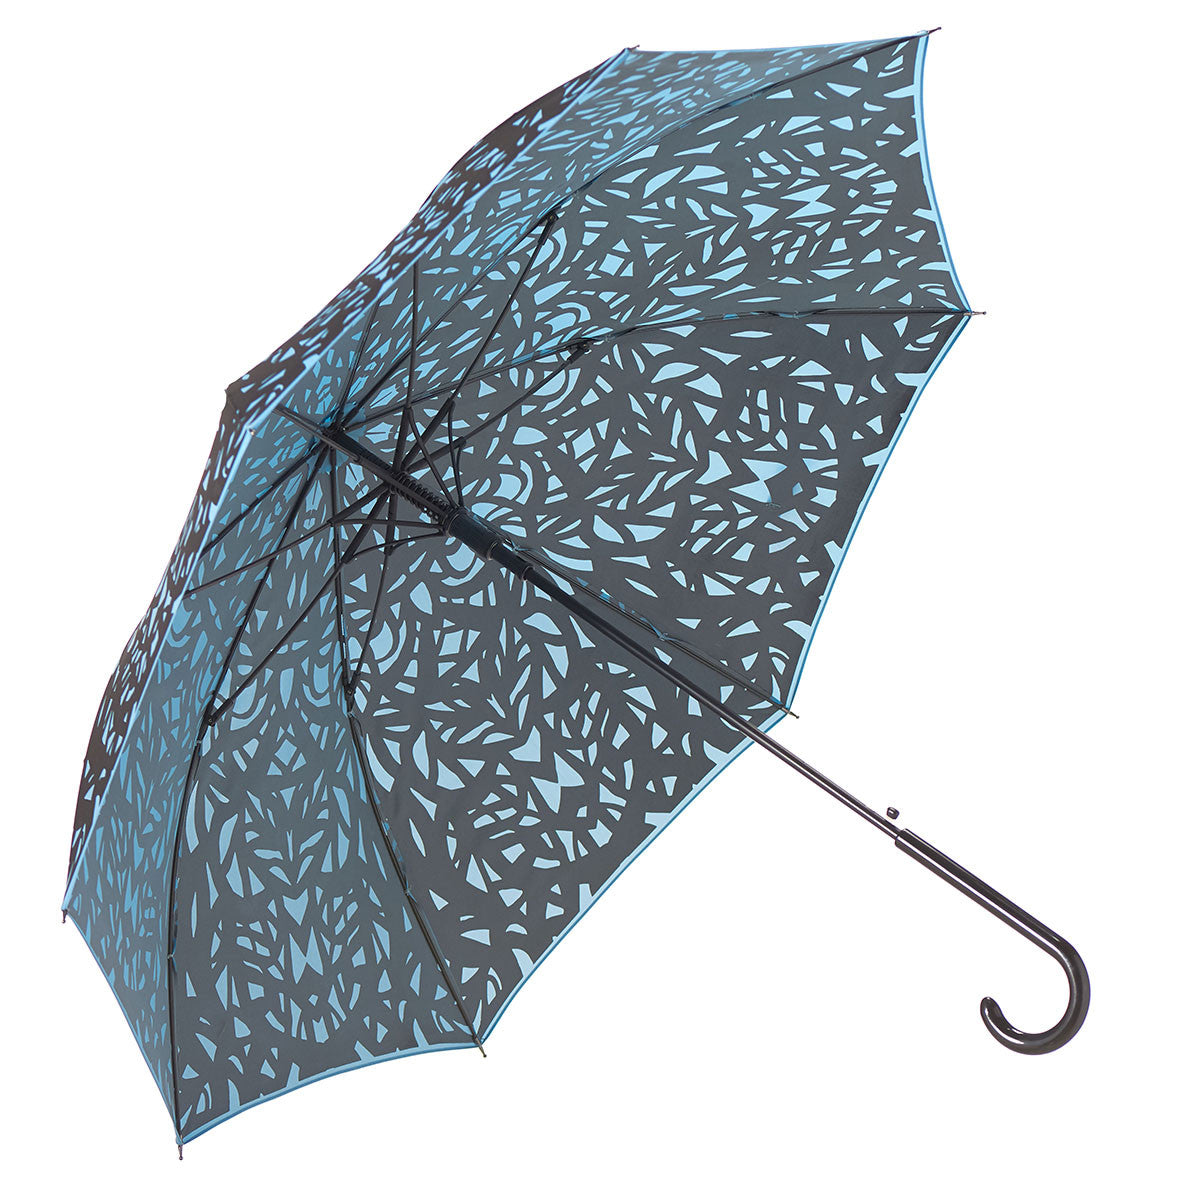 Web Design Umbrella Auto Open Premium Quality Black on Island Paradise Blue w/ sleeve and shoulder strap